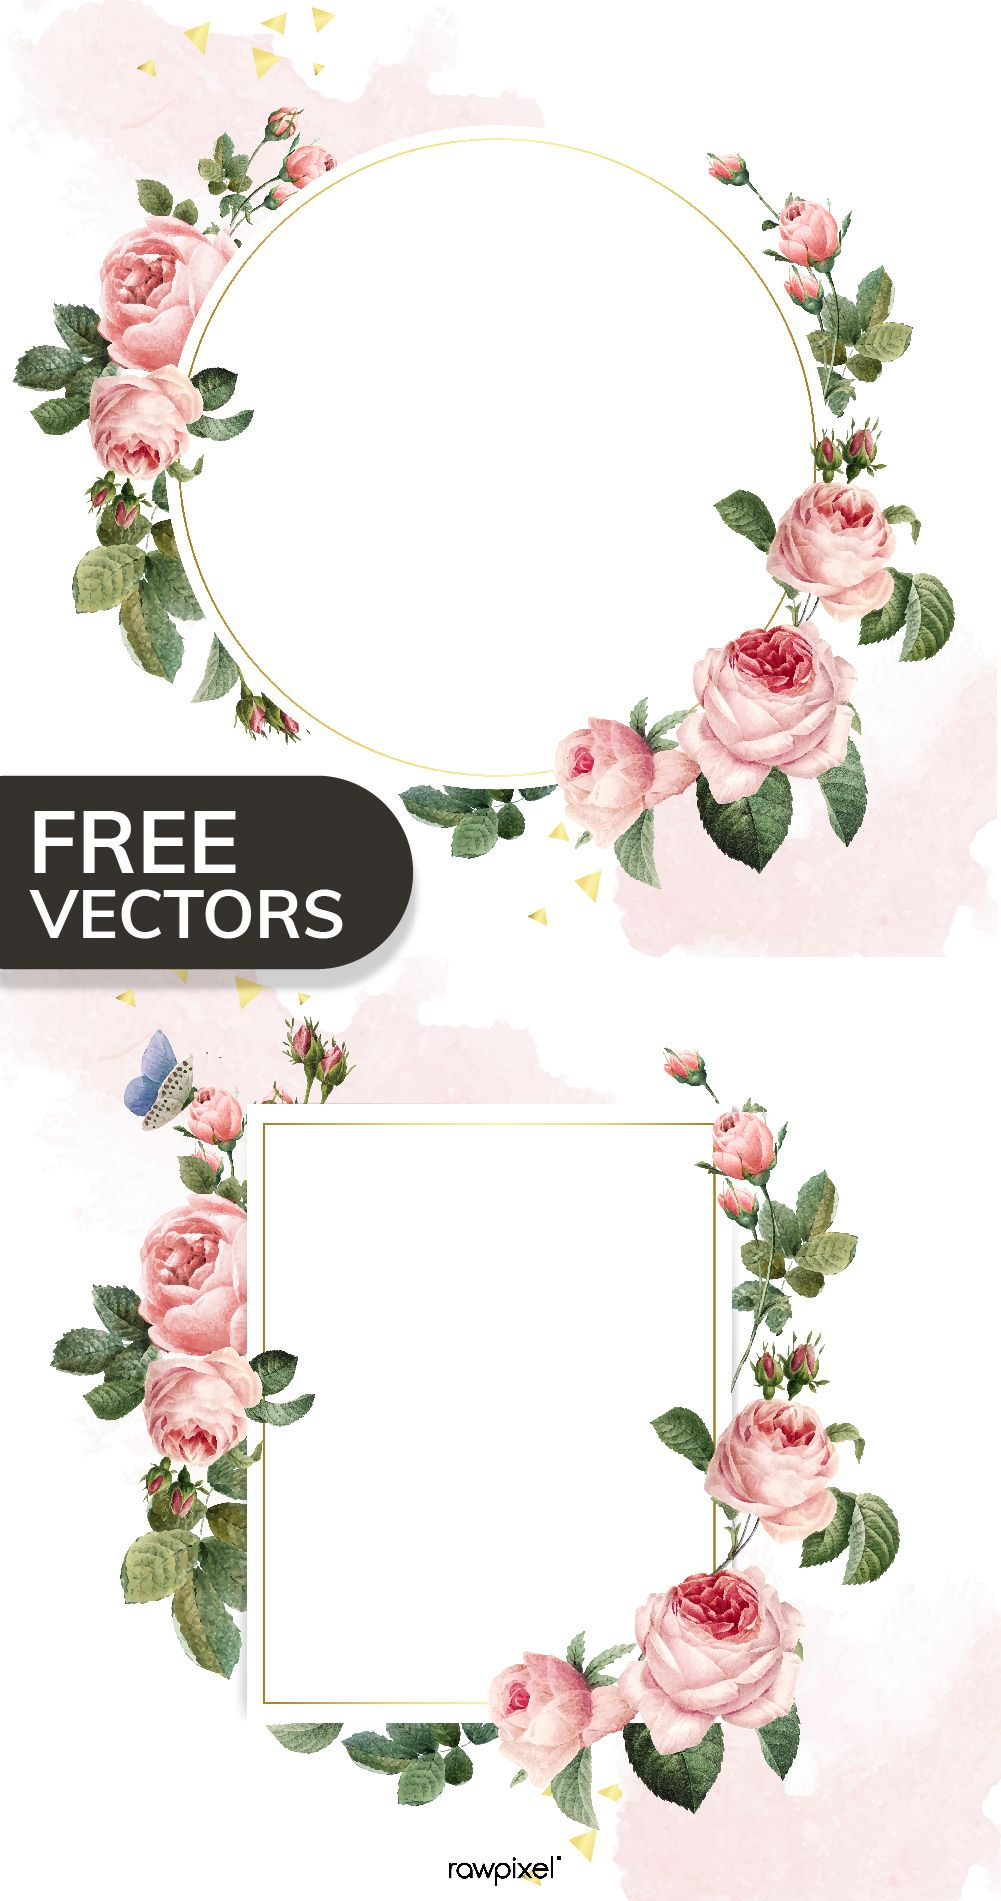 Download this cool & free set of floral frame vectors, and